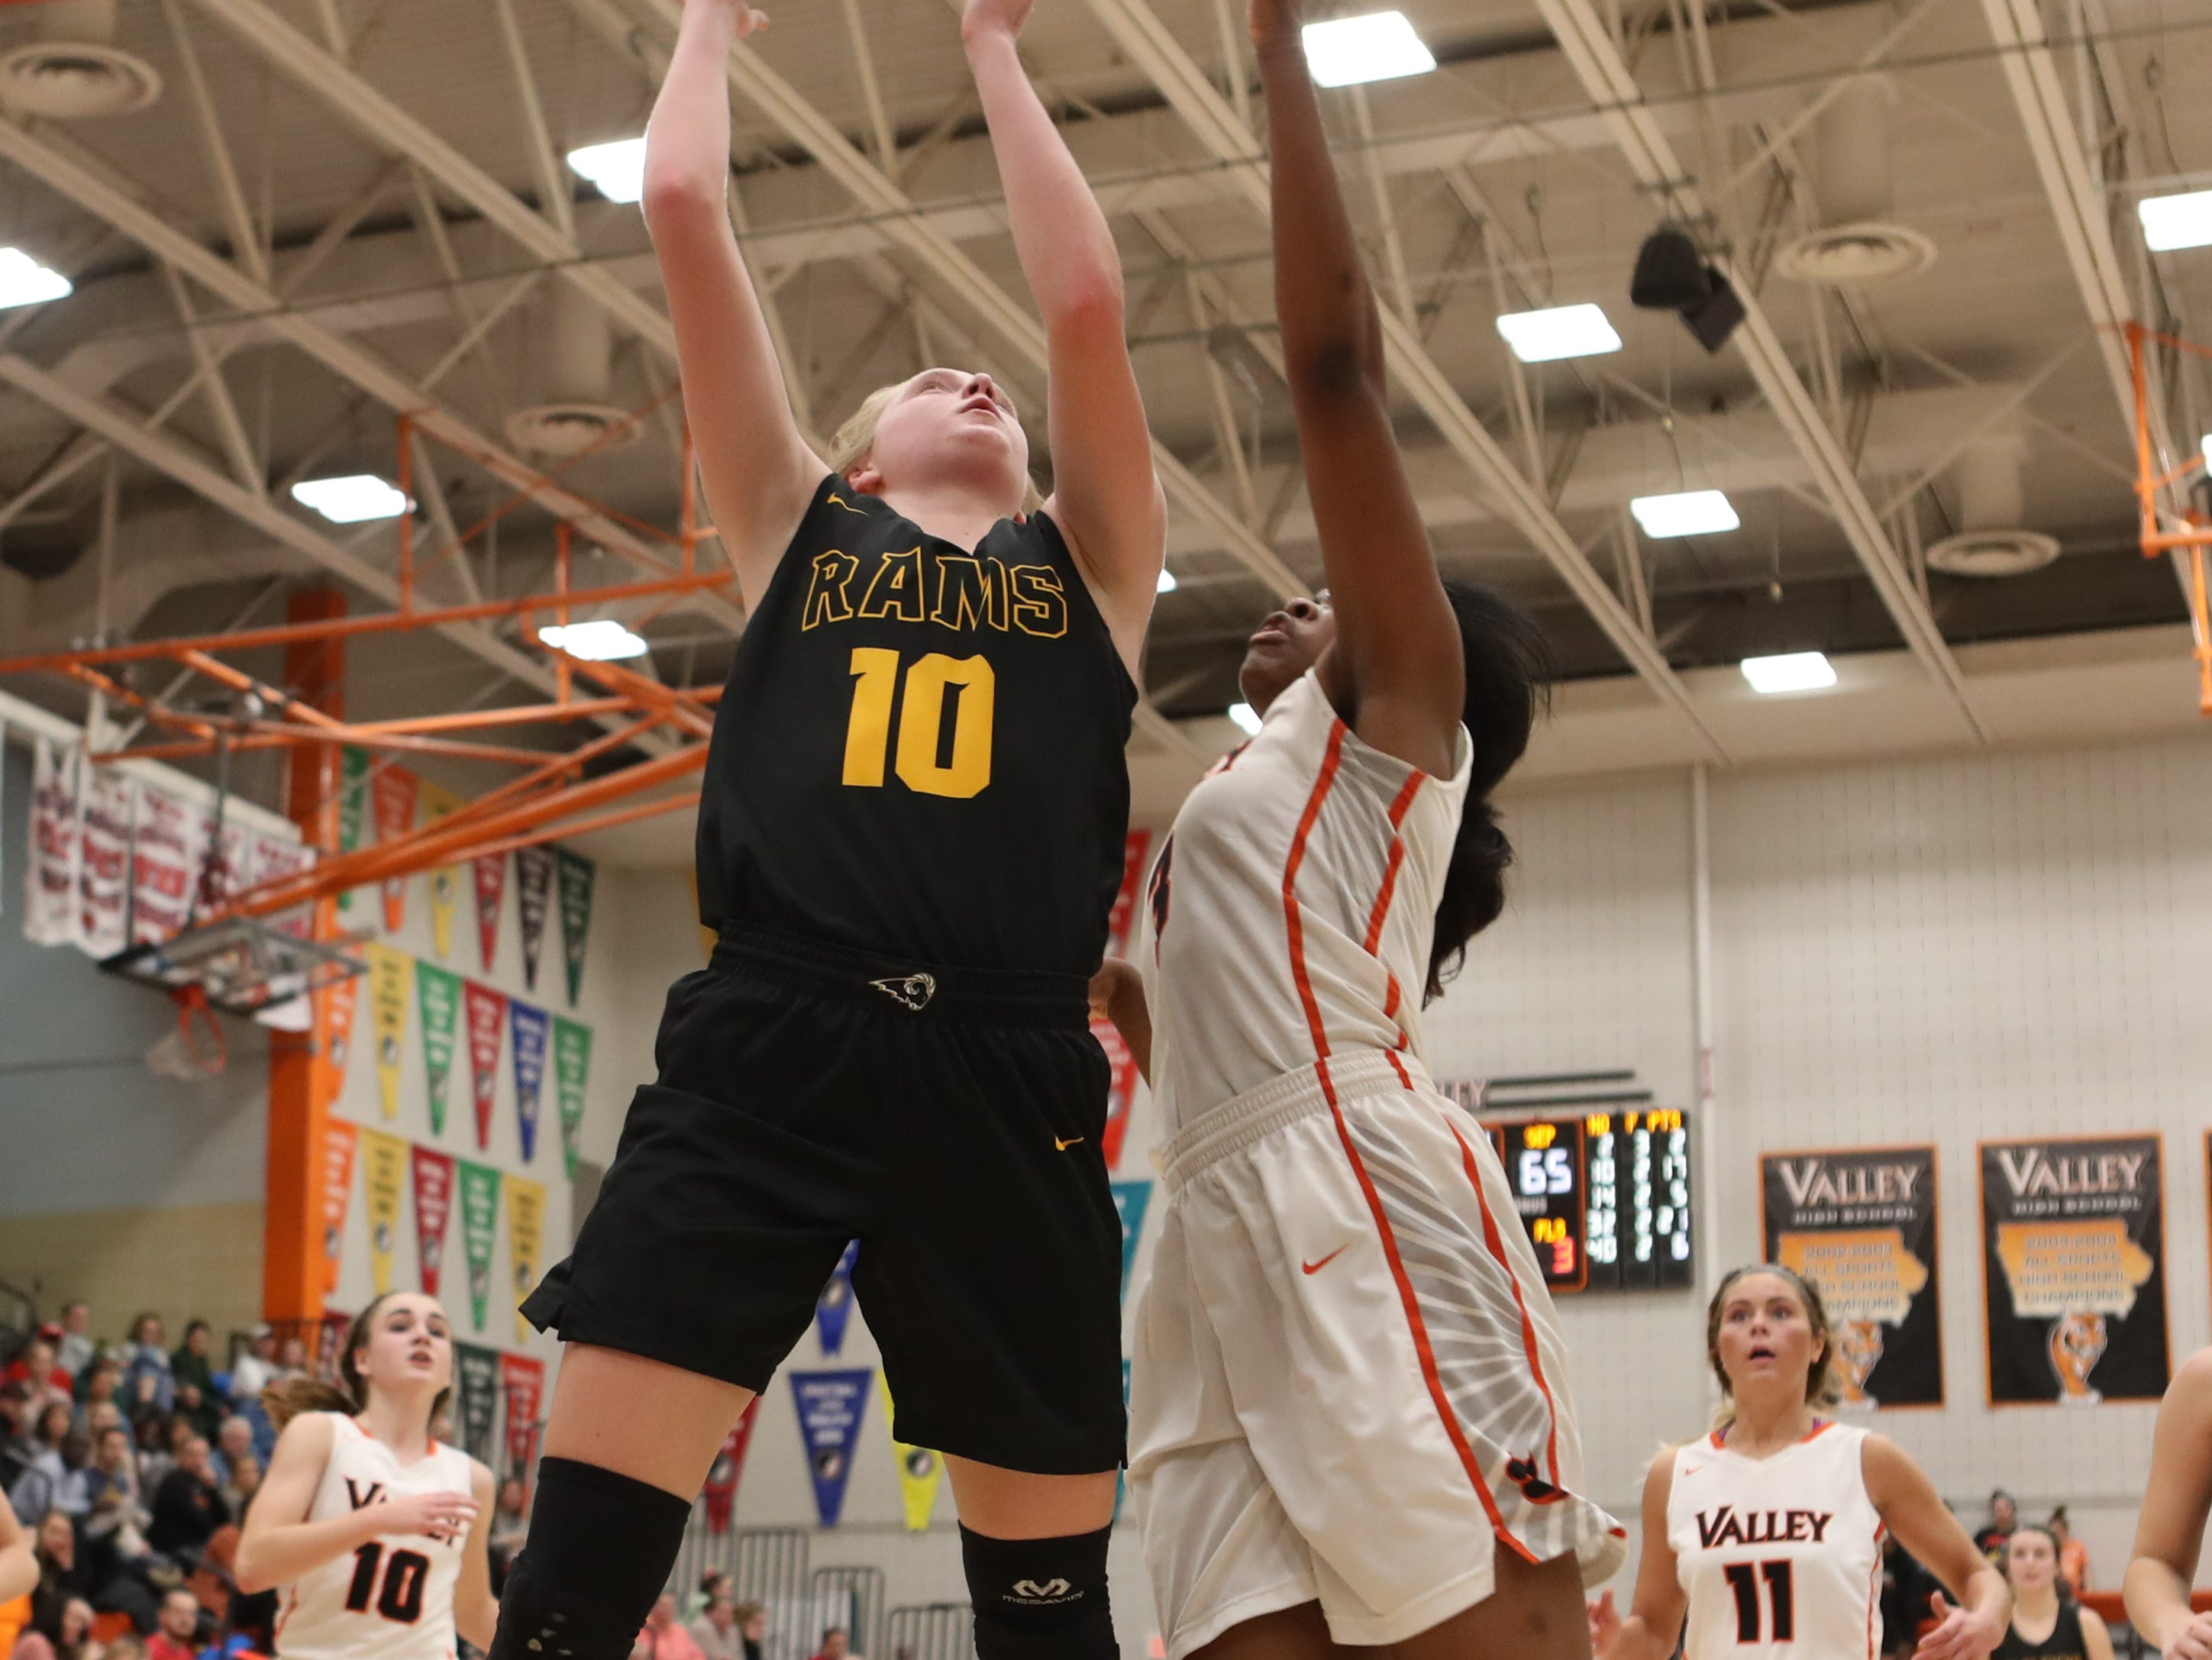 Southeast Polk Rams' Grace Larkins  shoots over the top of Valley Tigers' Zoe Young during a girls basketball game at Valley High School on Jan. 11, 2019.